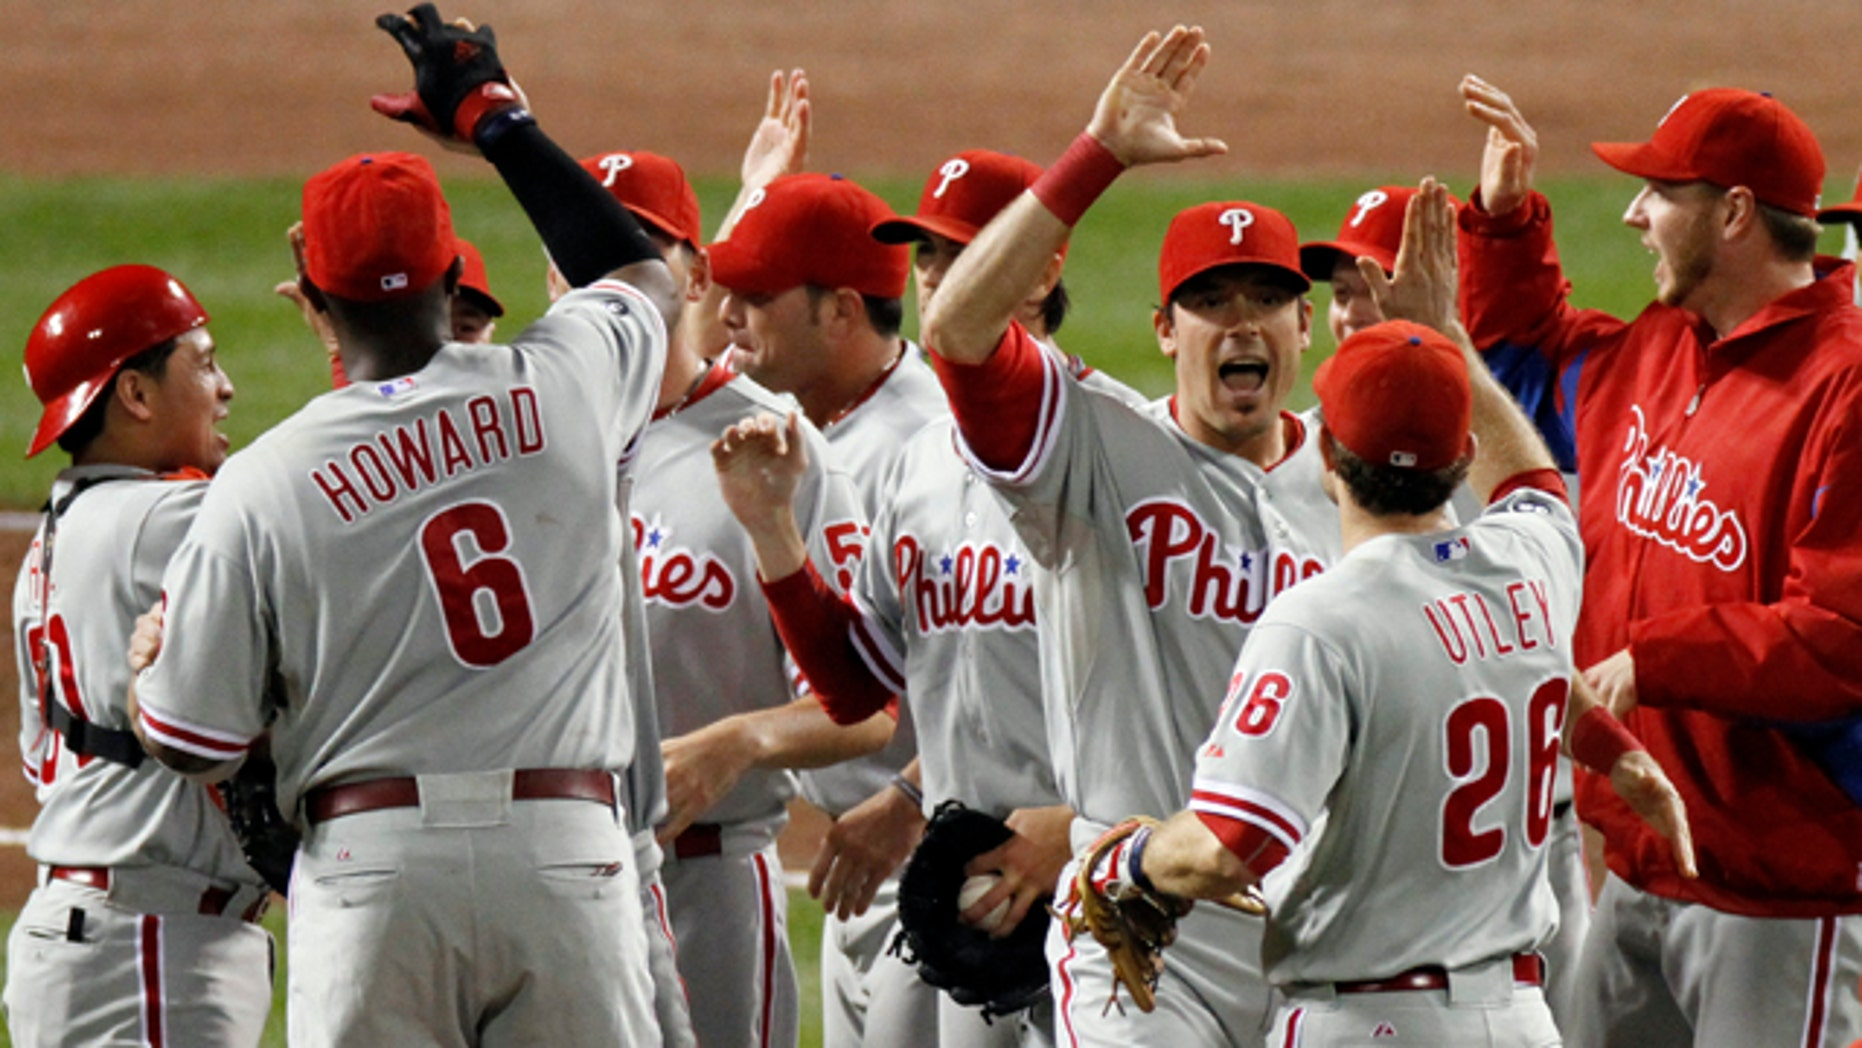 Oct. 10: The Philadelphia Phillies celebrate after beating the Cincinnati Reds 2-0 in Game 3 of baseball's National League Division Series in Cincinnati.